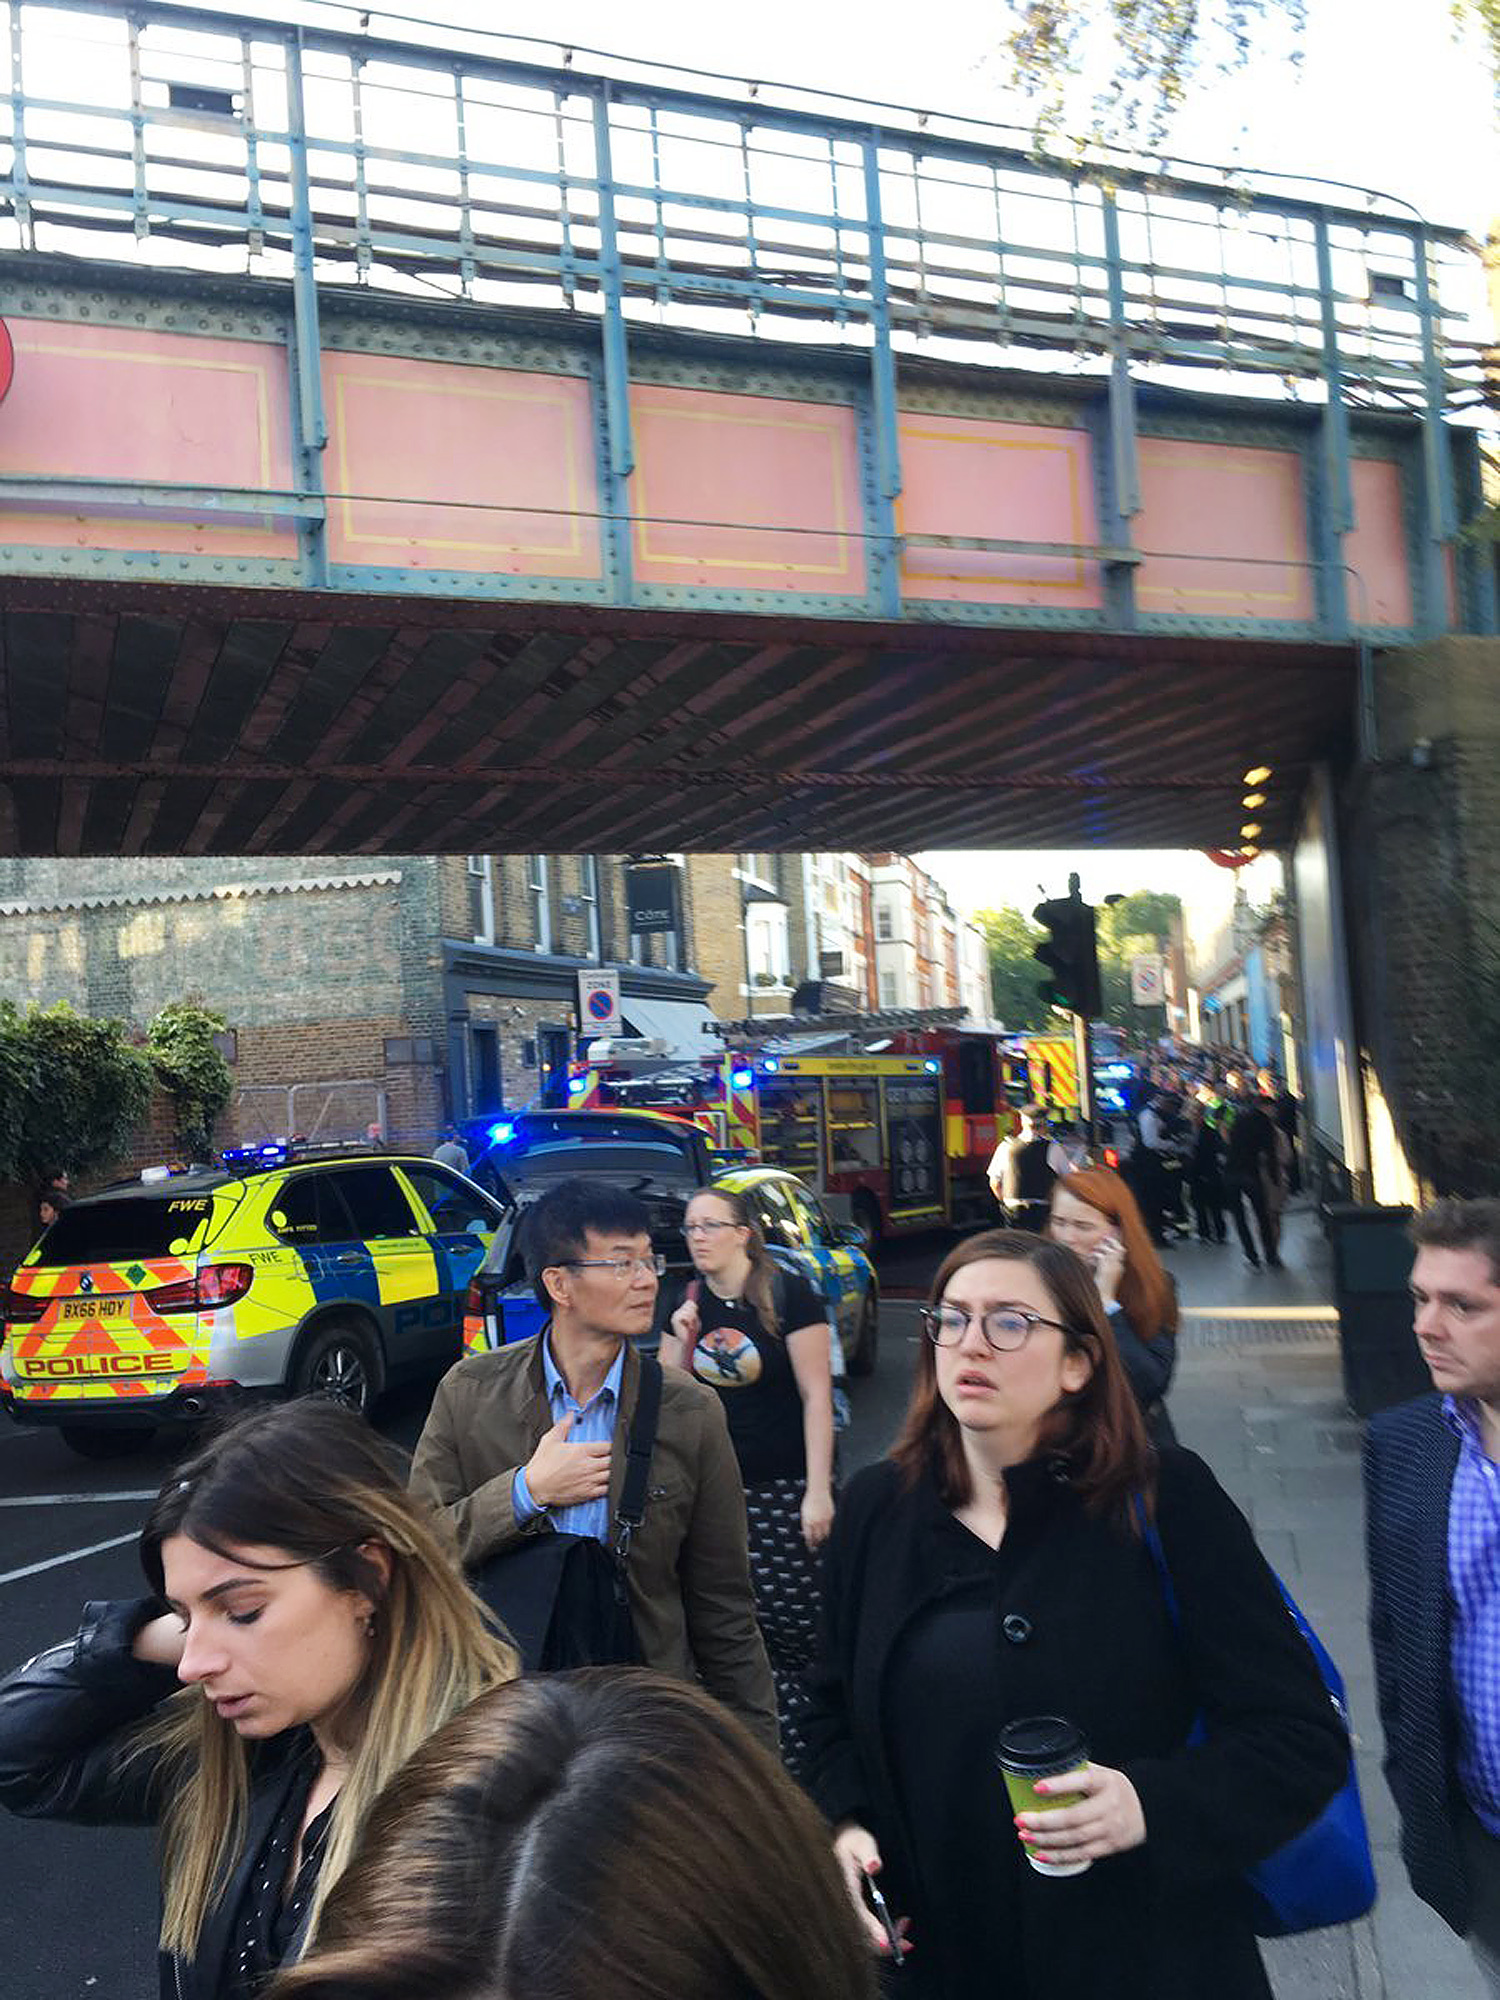 "<div class=""meta image-caption""><div class=""origin-logo origin-image none""><span>none</span></div><span class=""caption-text"">People leave the scene of an explosion at a southwest London subway station in London Friday, Sept. 15, 2017. (Alex Littlefield via AP)</span></div>"